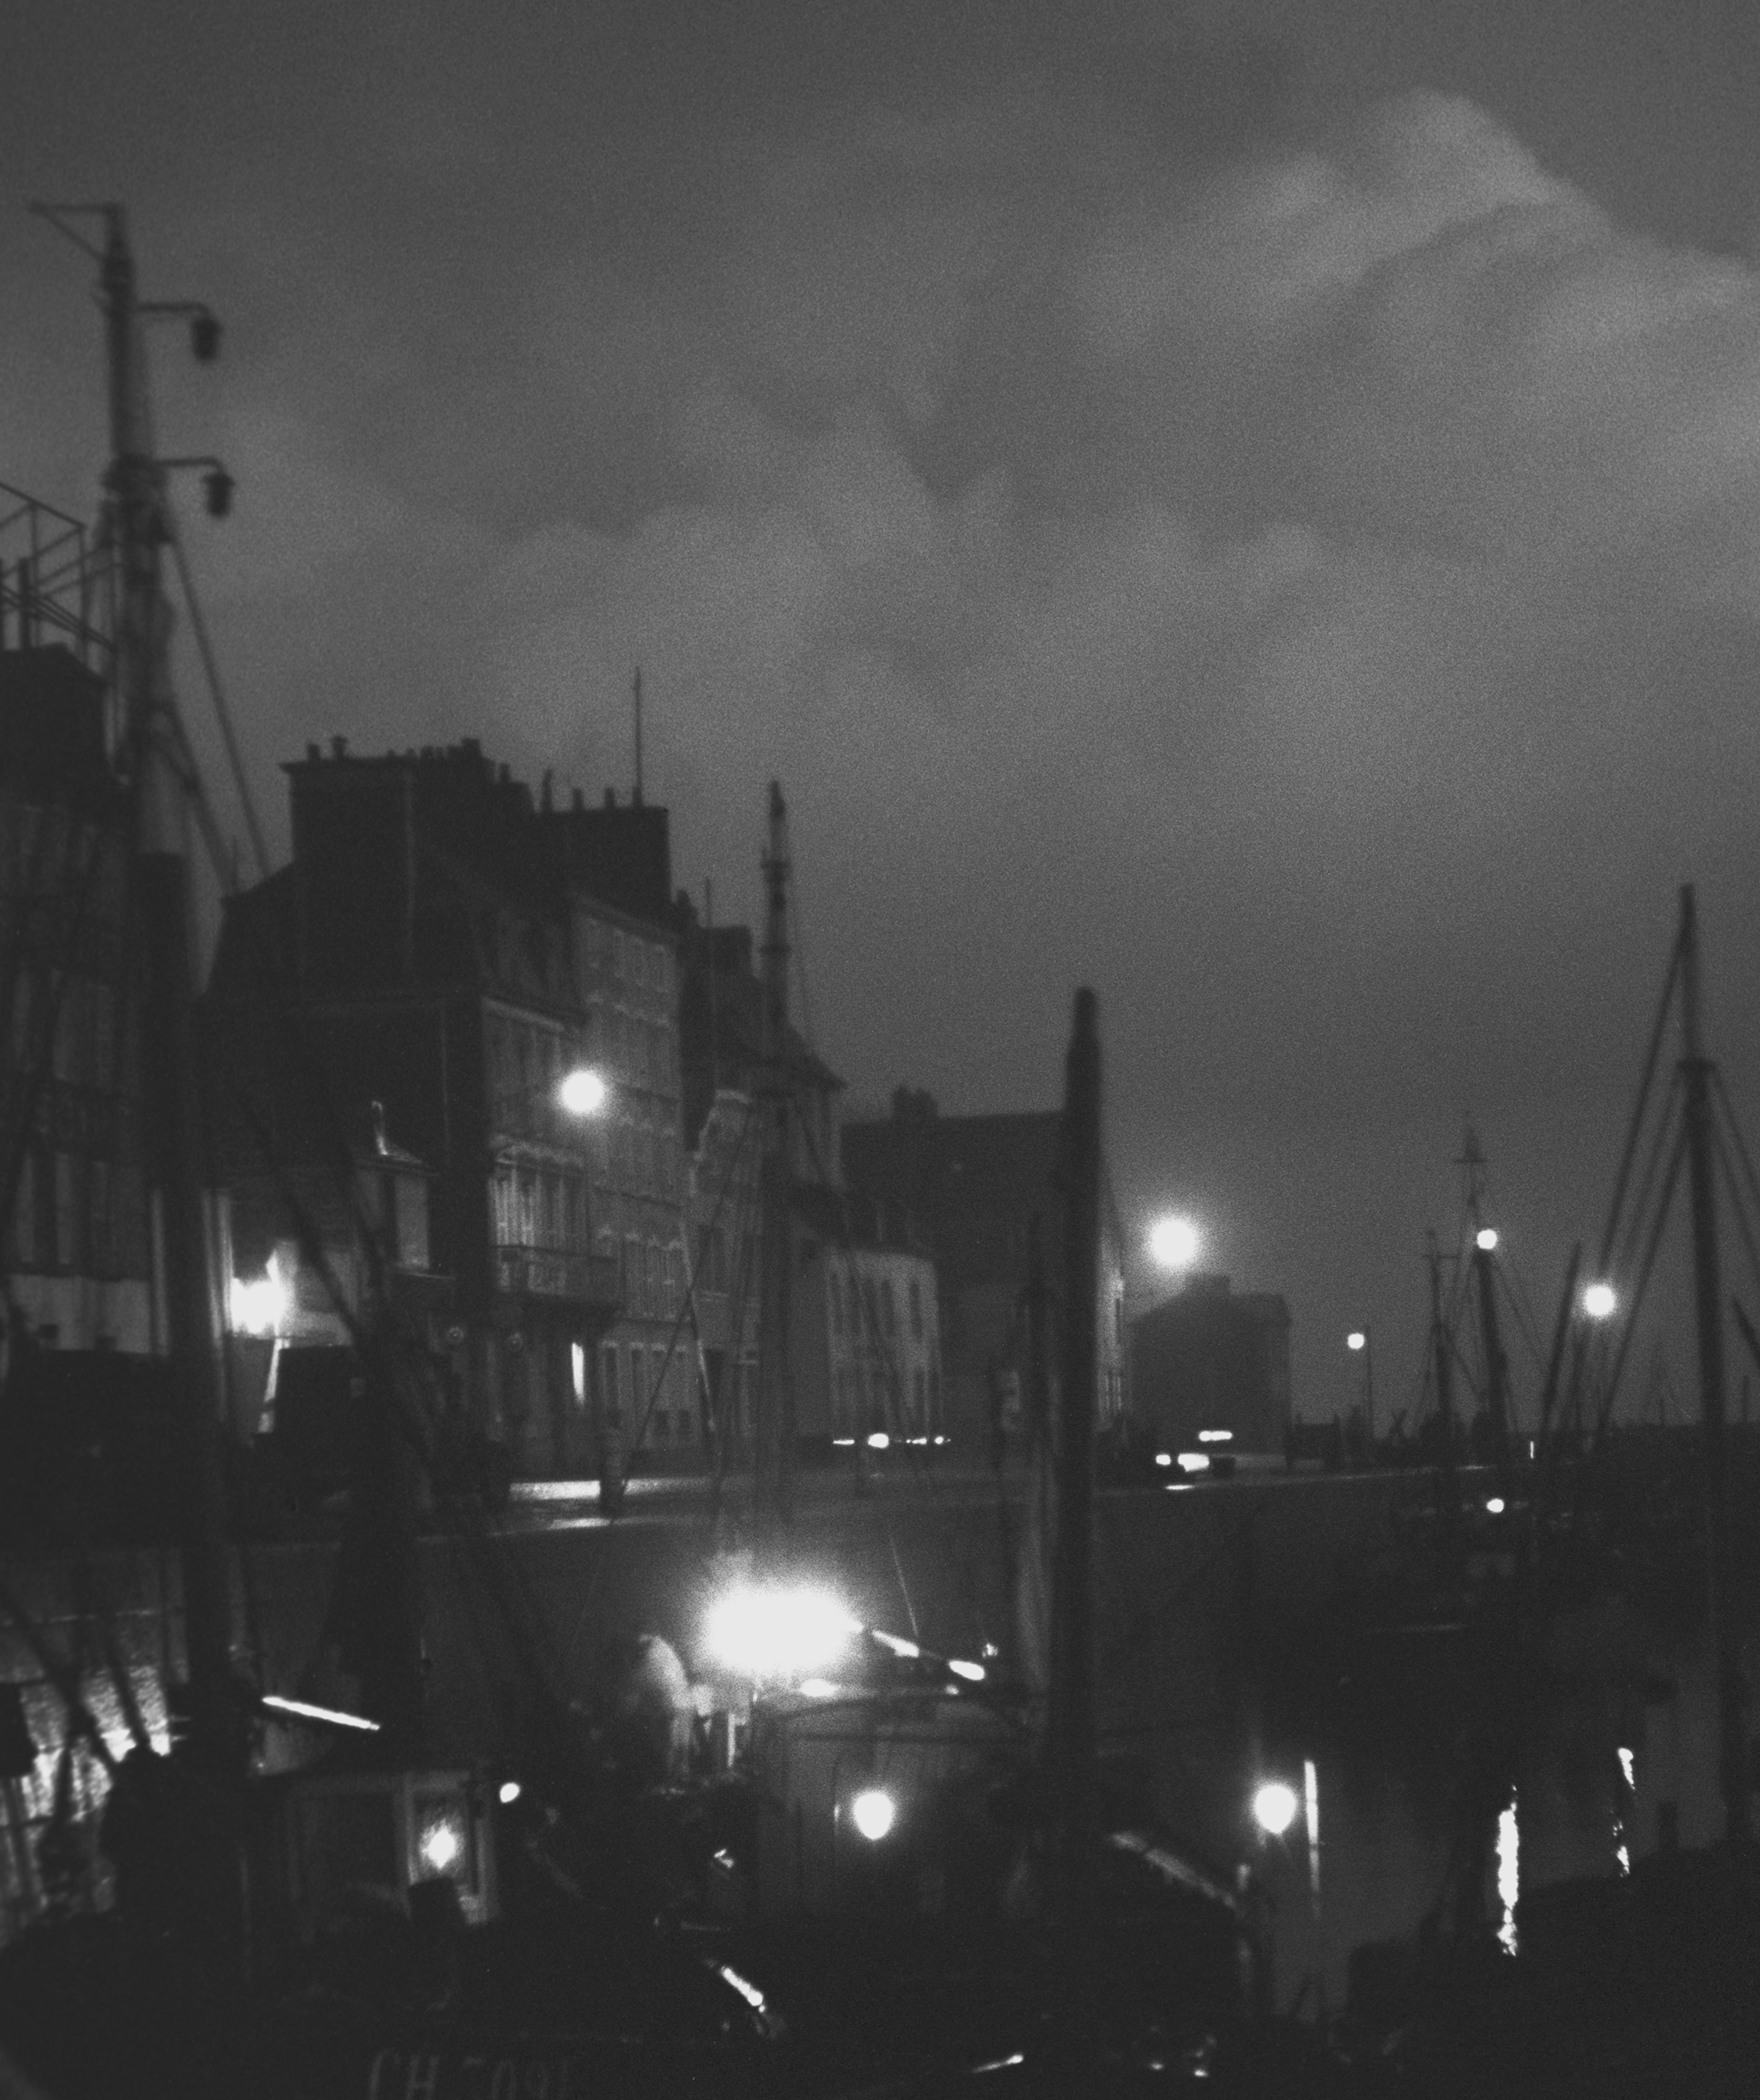 SEAPORT AT NIGHT - 1949